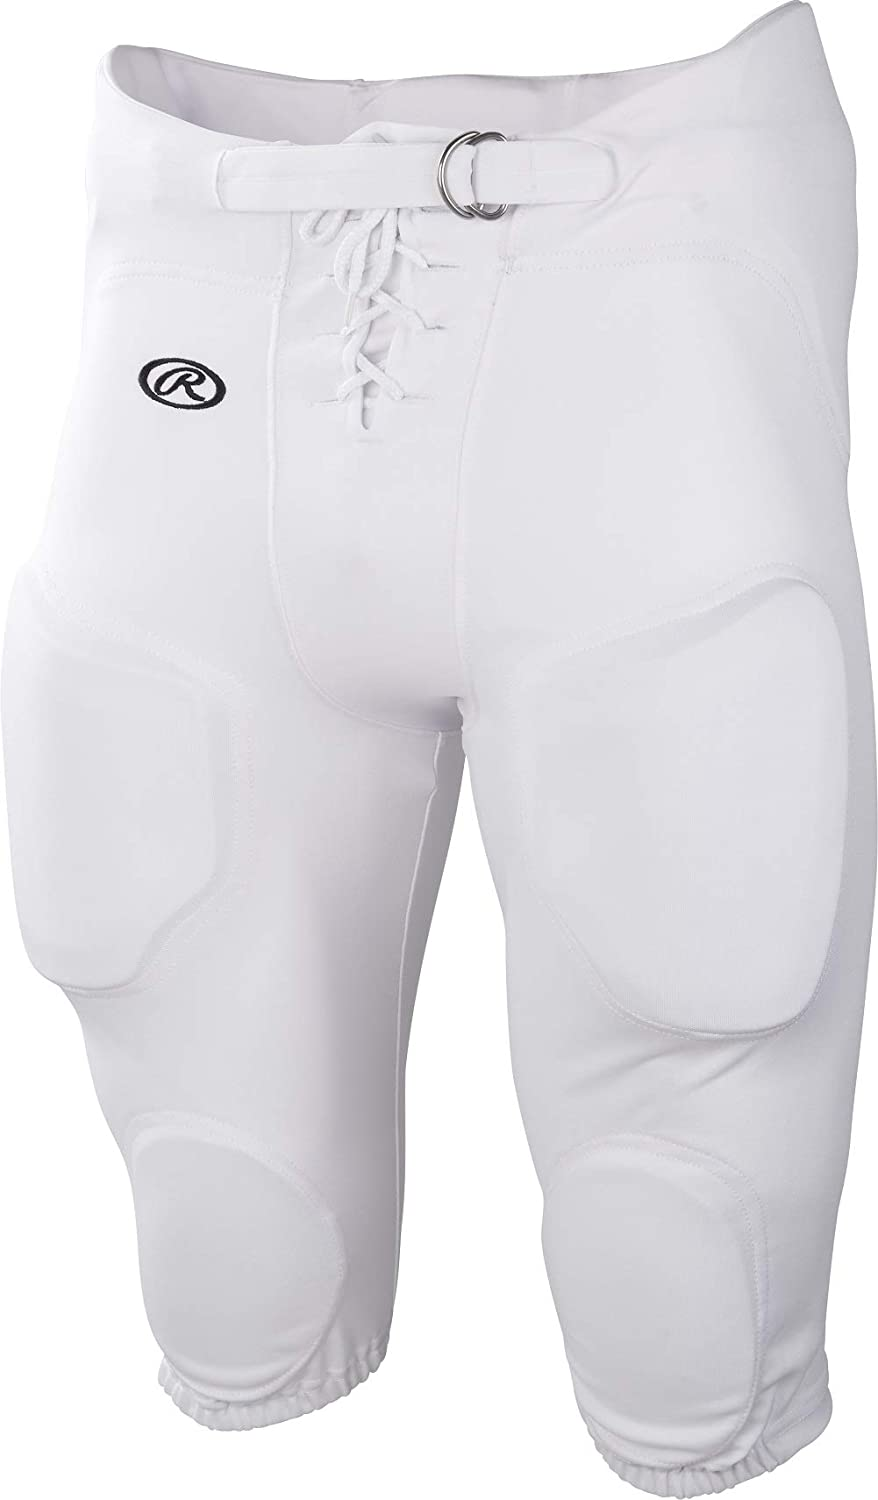 Details about  /Rawlings Youth Lightweight Football Pants White Large